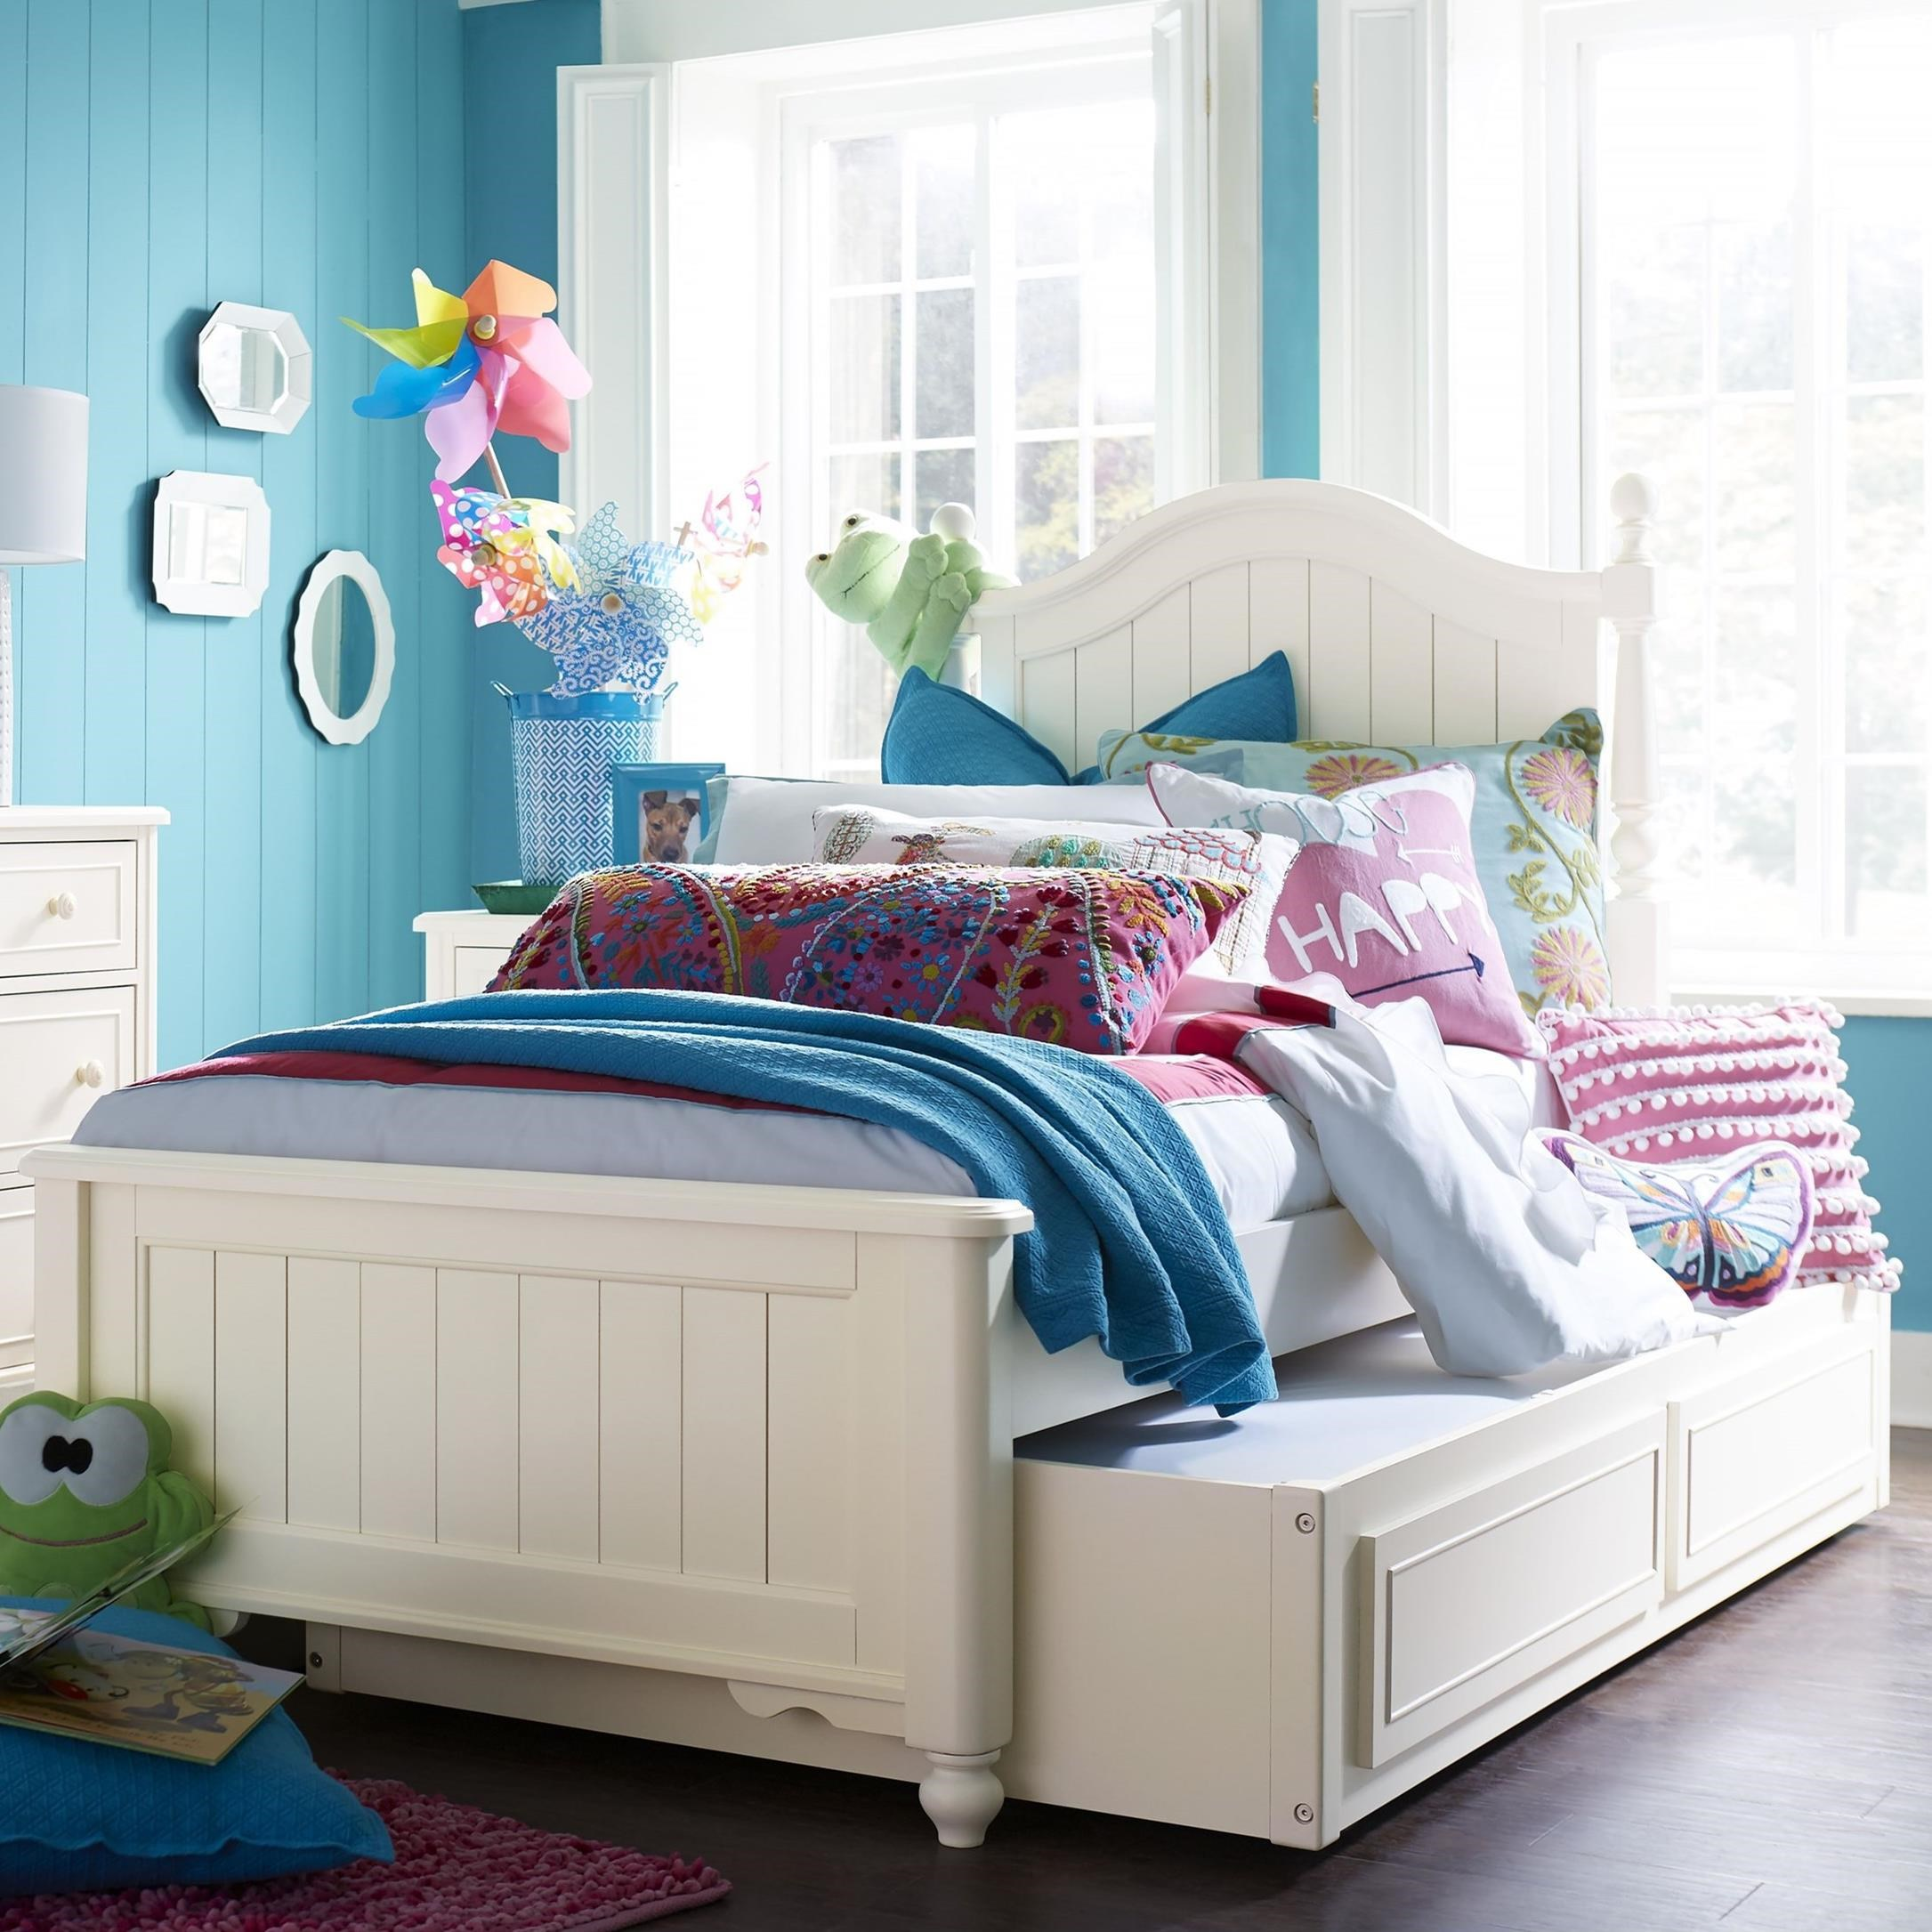 legacy classic kids summerset twin bed with trundle. Black Bedroom Furniture Sets. Home Design Ideas